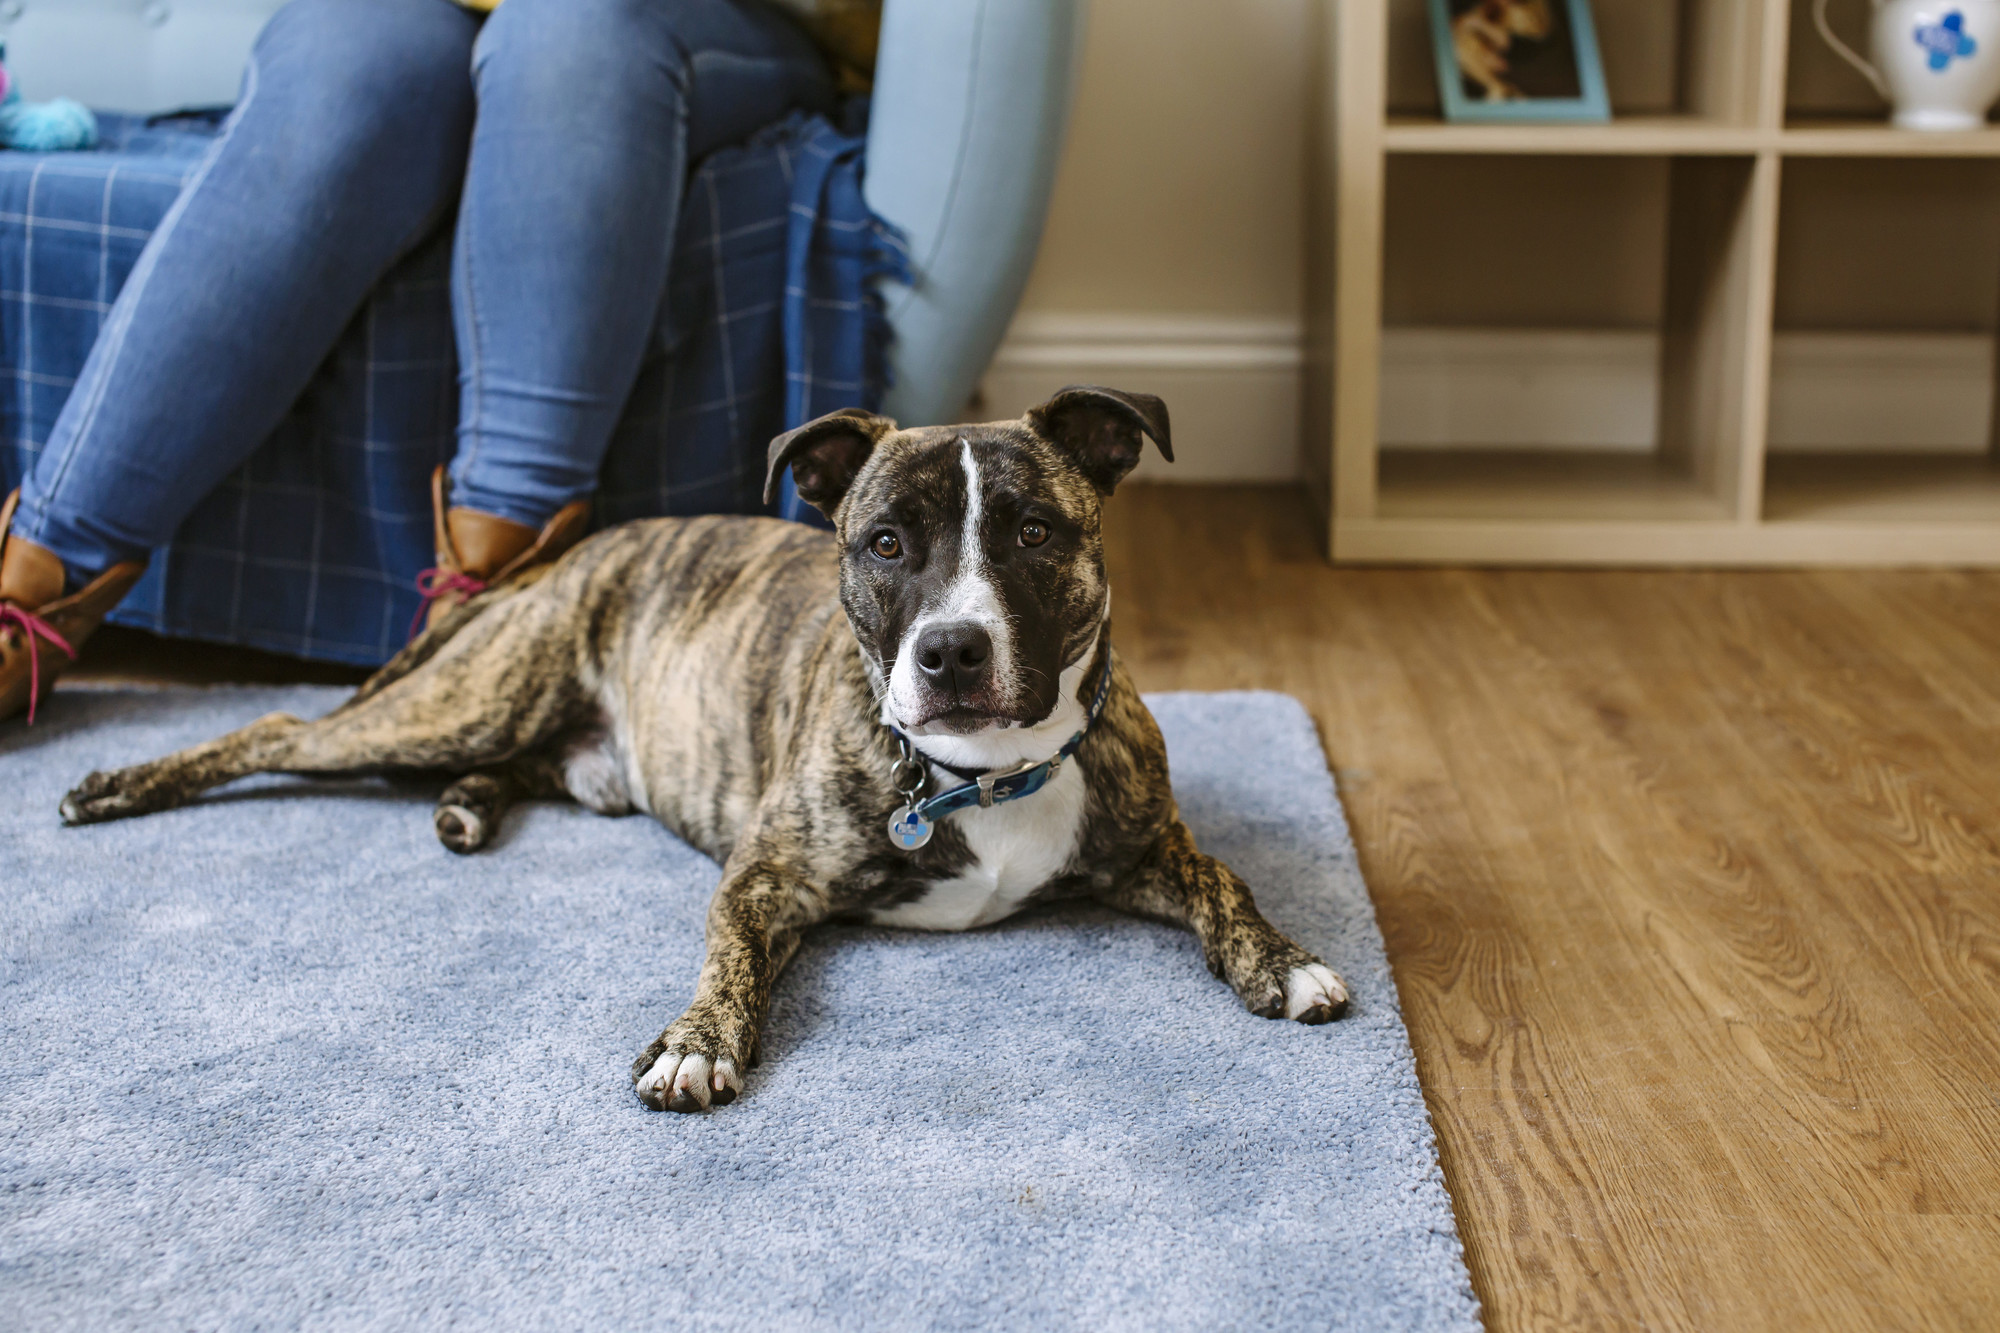 Kennel cough symptoms and treatment | Blue Cross